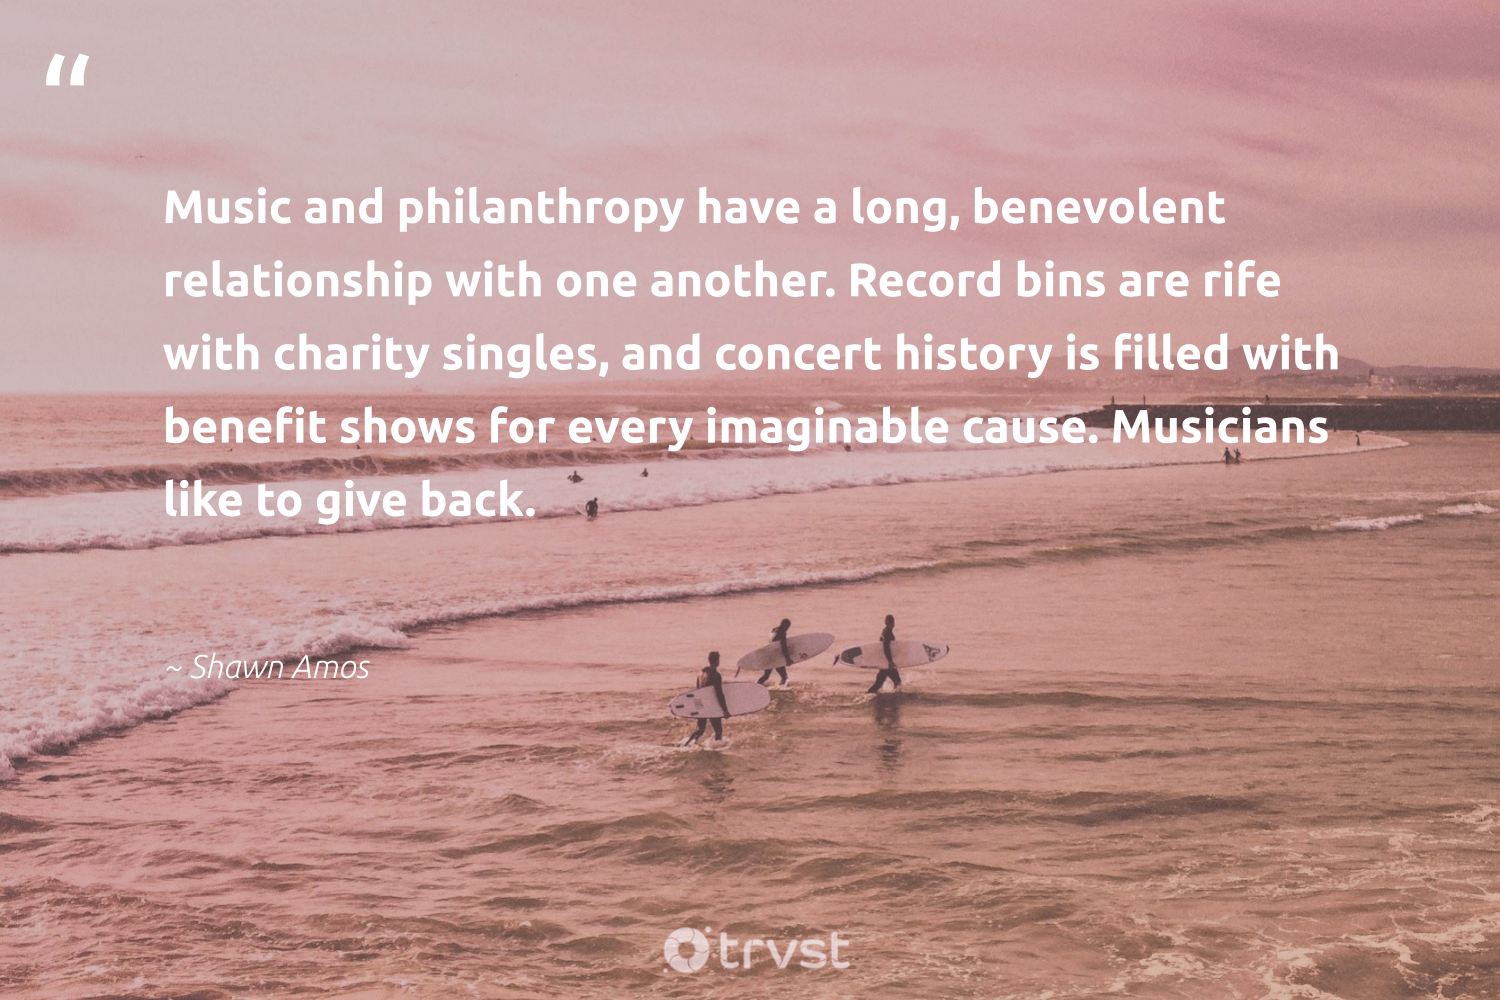 """Music and philanthropy have a long, benevolent relationship with one another. Record bins are rife with charity singles, and concert history is filled with benefit shows for every imaginable cause. Musicians like to give back.""  - Shawn Amos #trvst #quotes #giveback #cause #philanthropy #causes #togetherwecan #workingtogether #gogreen #foundation #itscooltobekind #dogood"